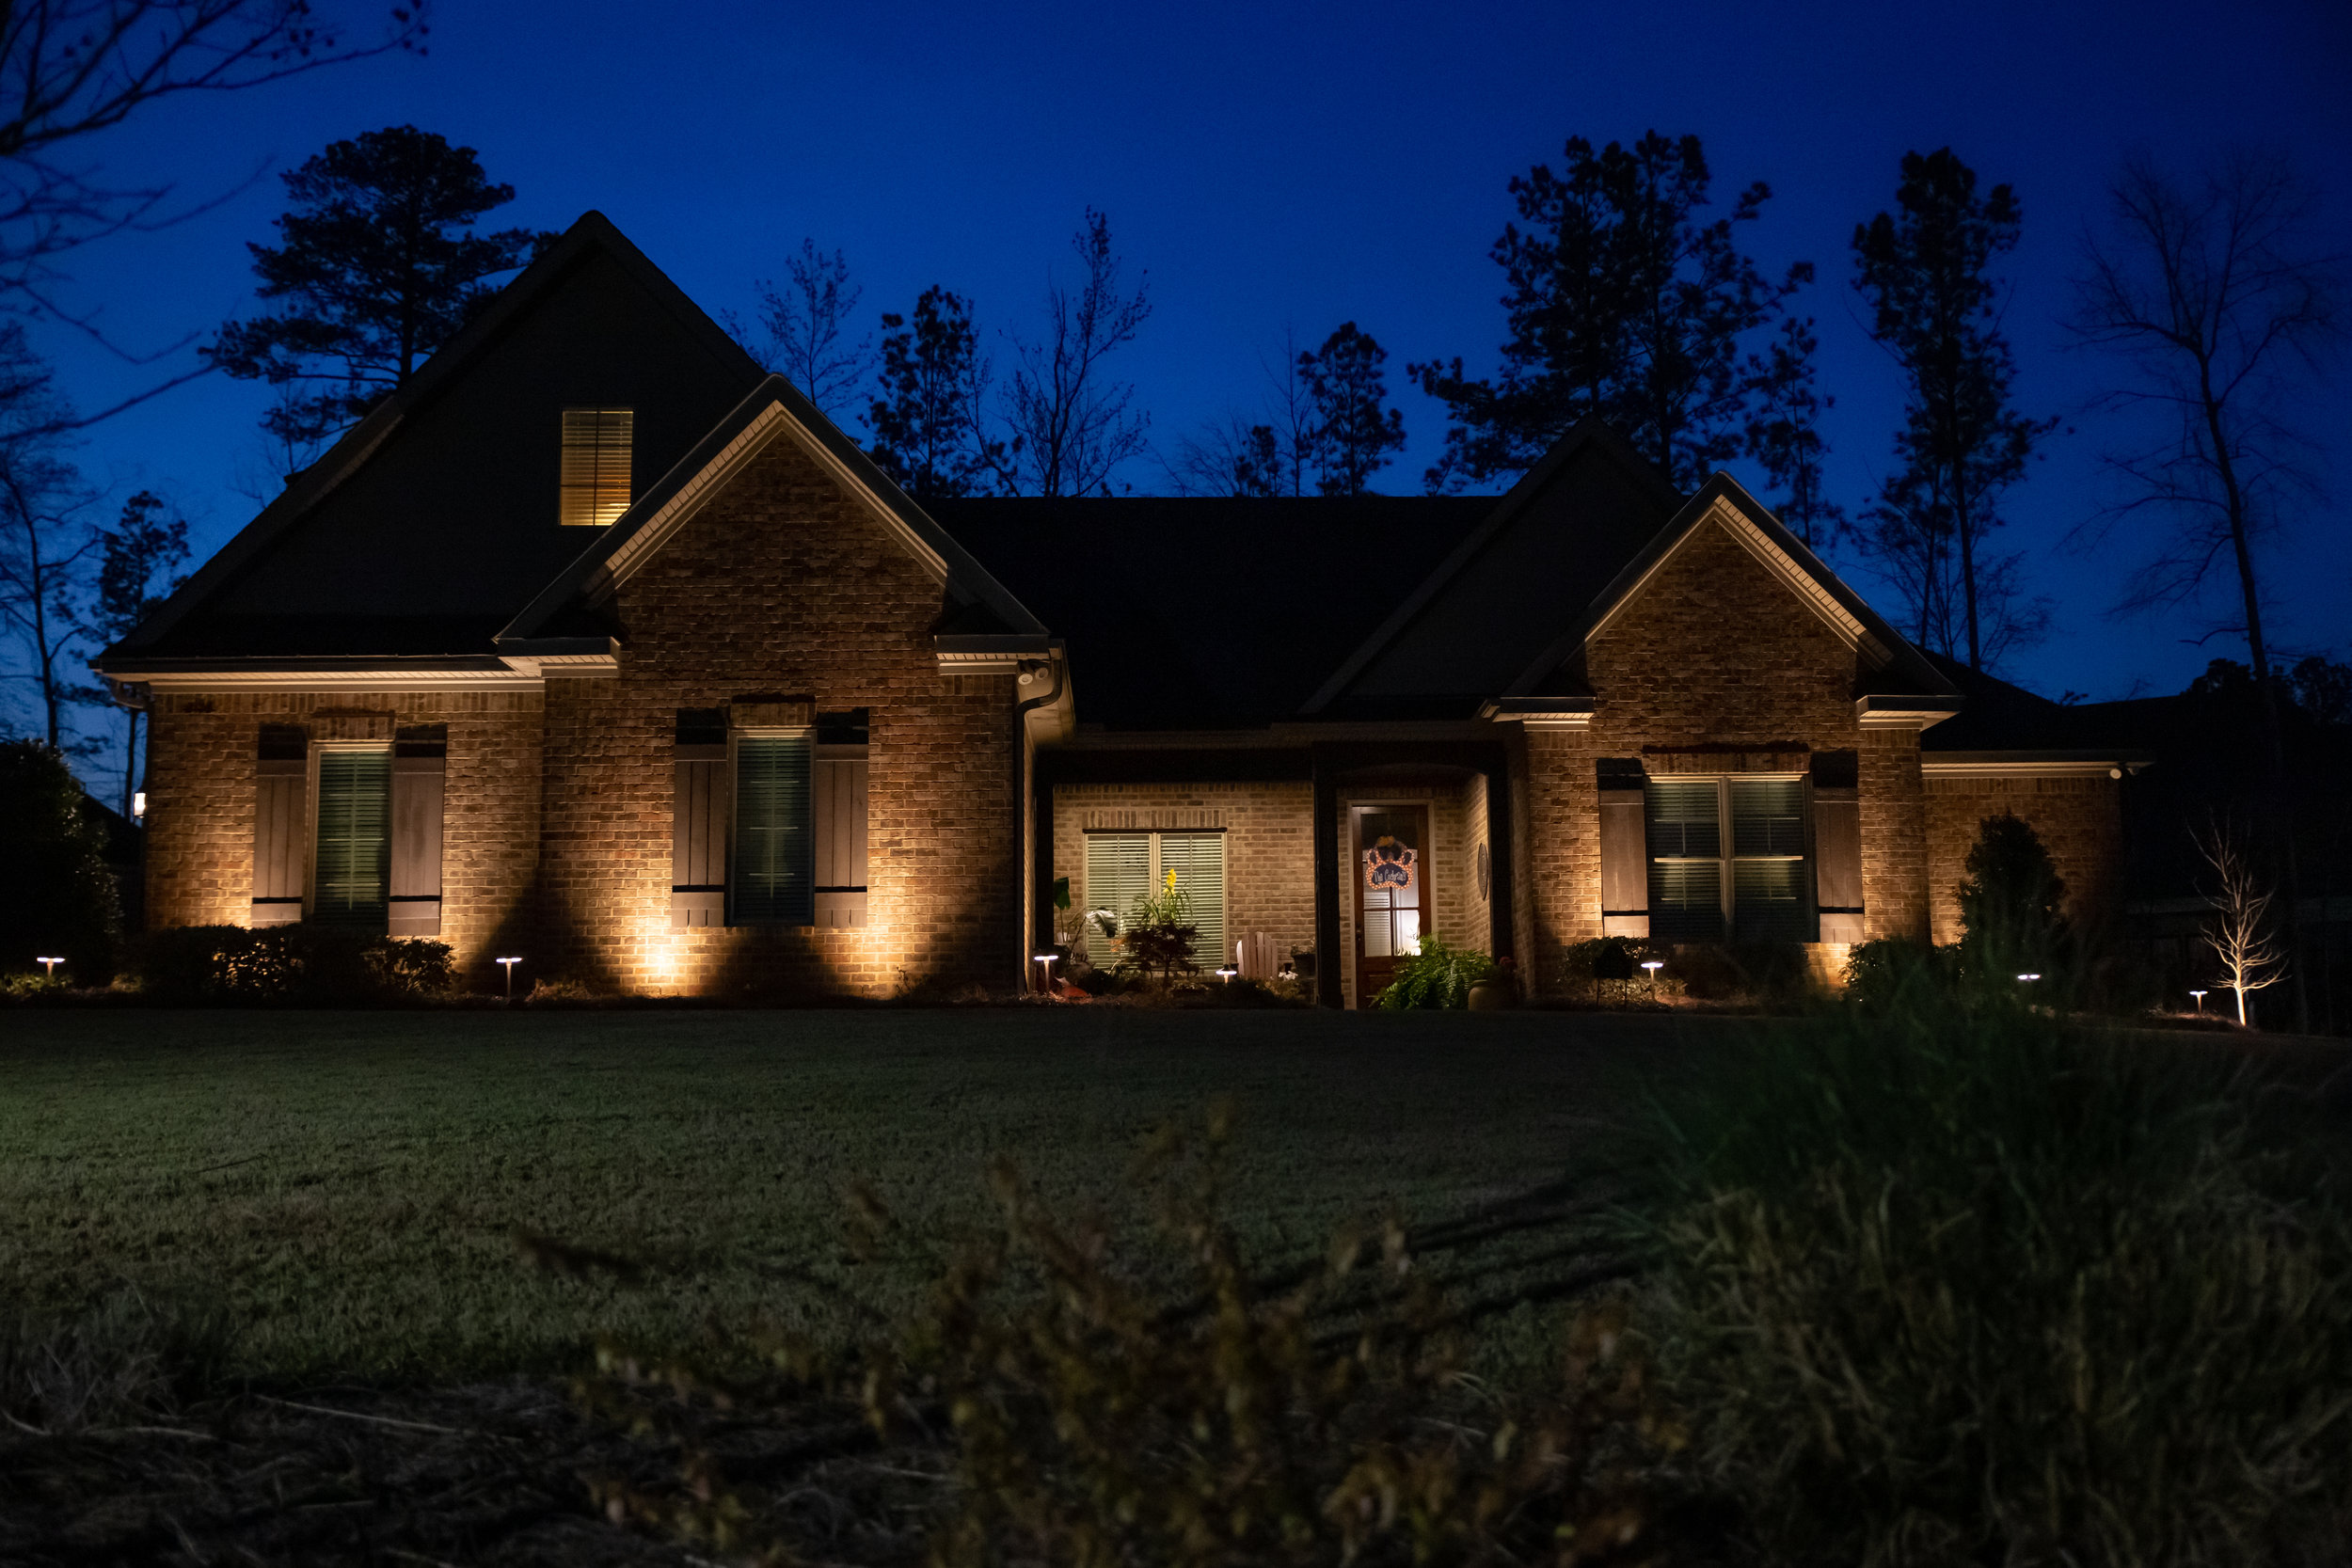 architectural lighting landscape lighting Auburn, Alabama